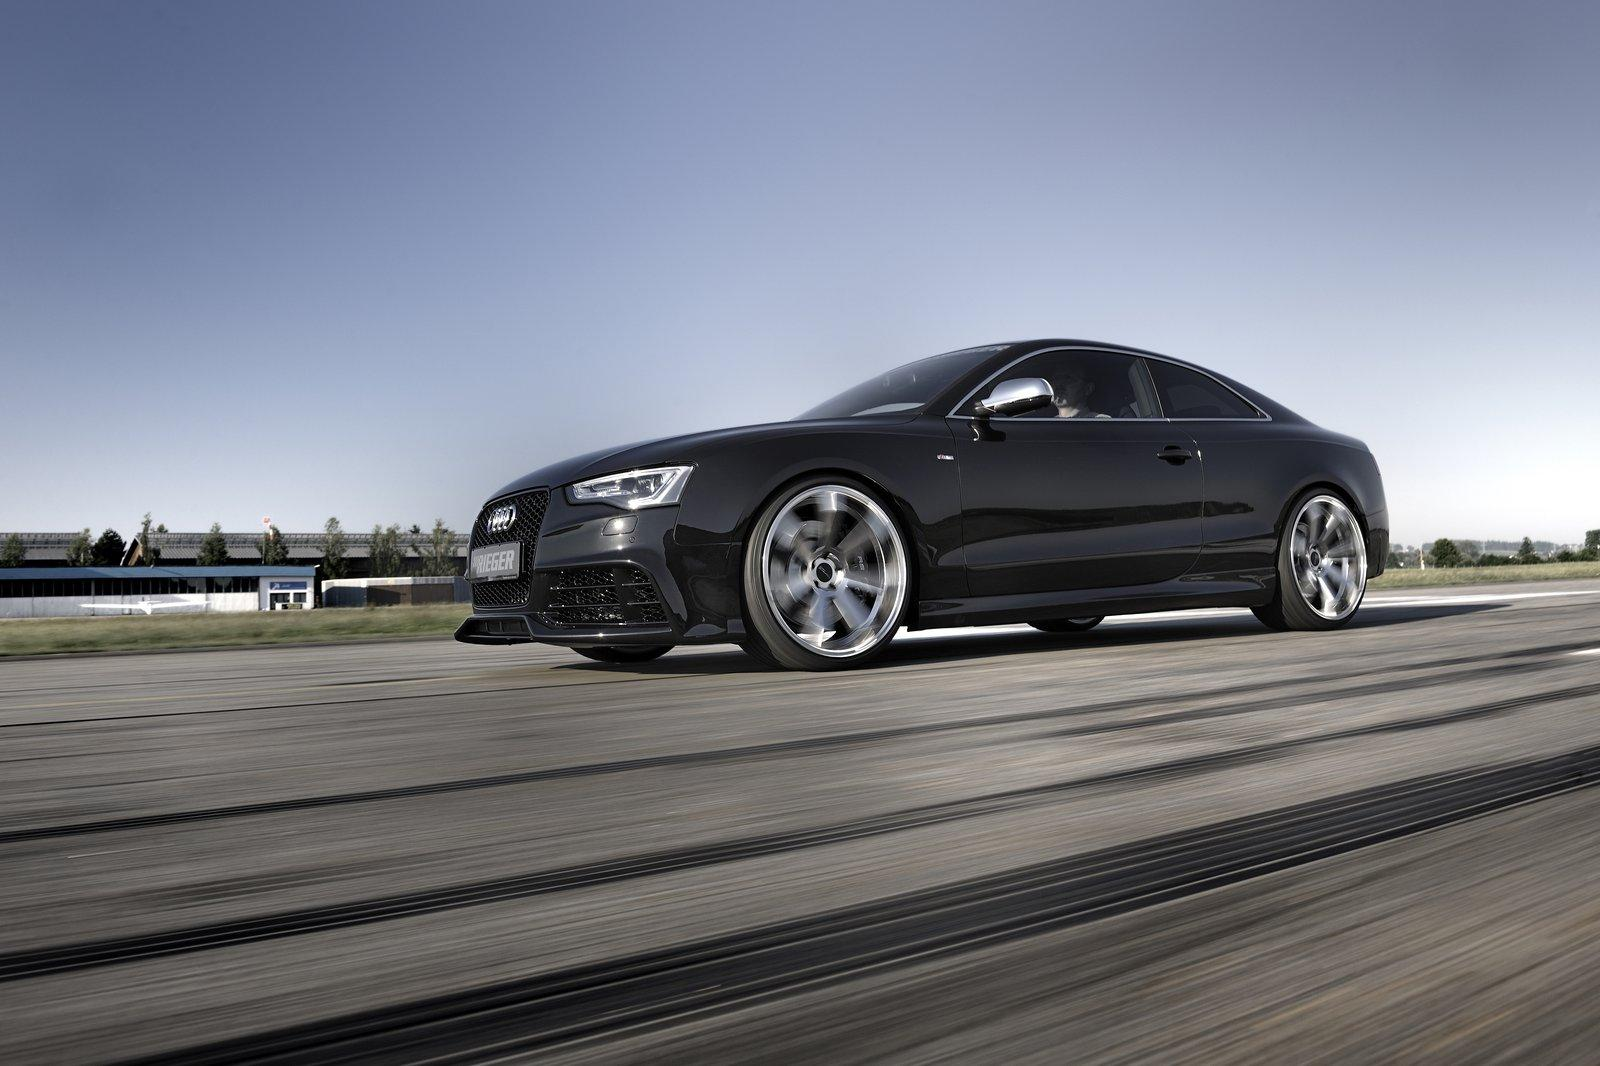 2012-Audi-A5-Facelift-Rieger-Tuning-9.jpg?imgmax=1800